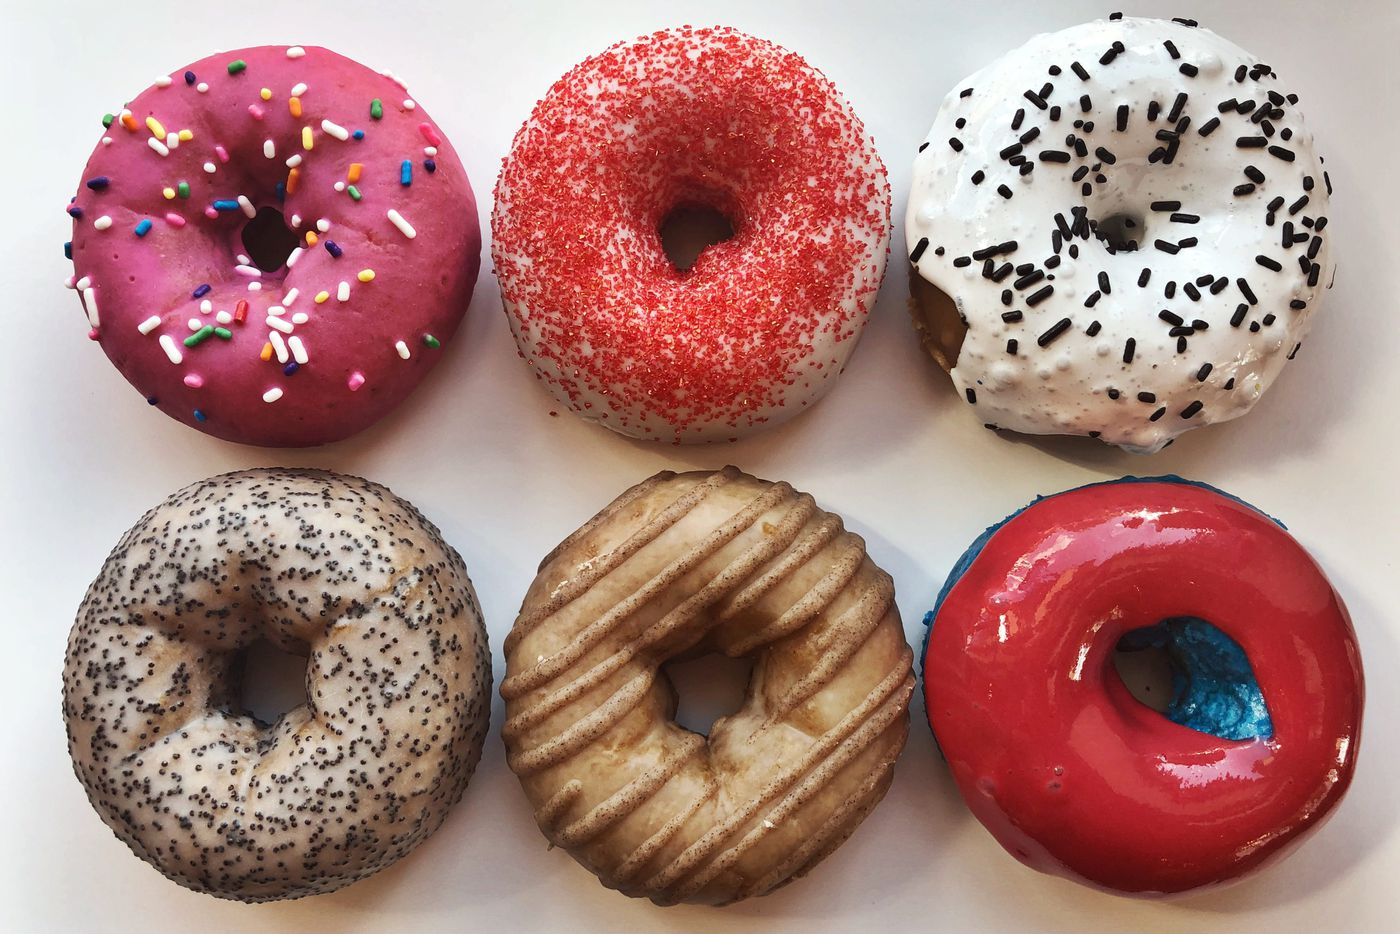 Federal Donuts celebrates Phish's Philly shows with special flavors